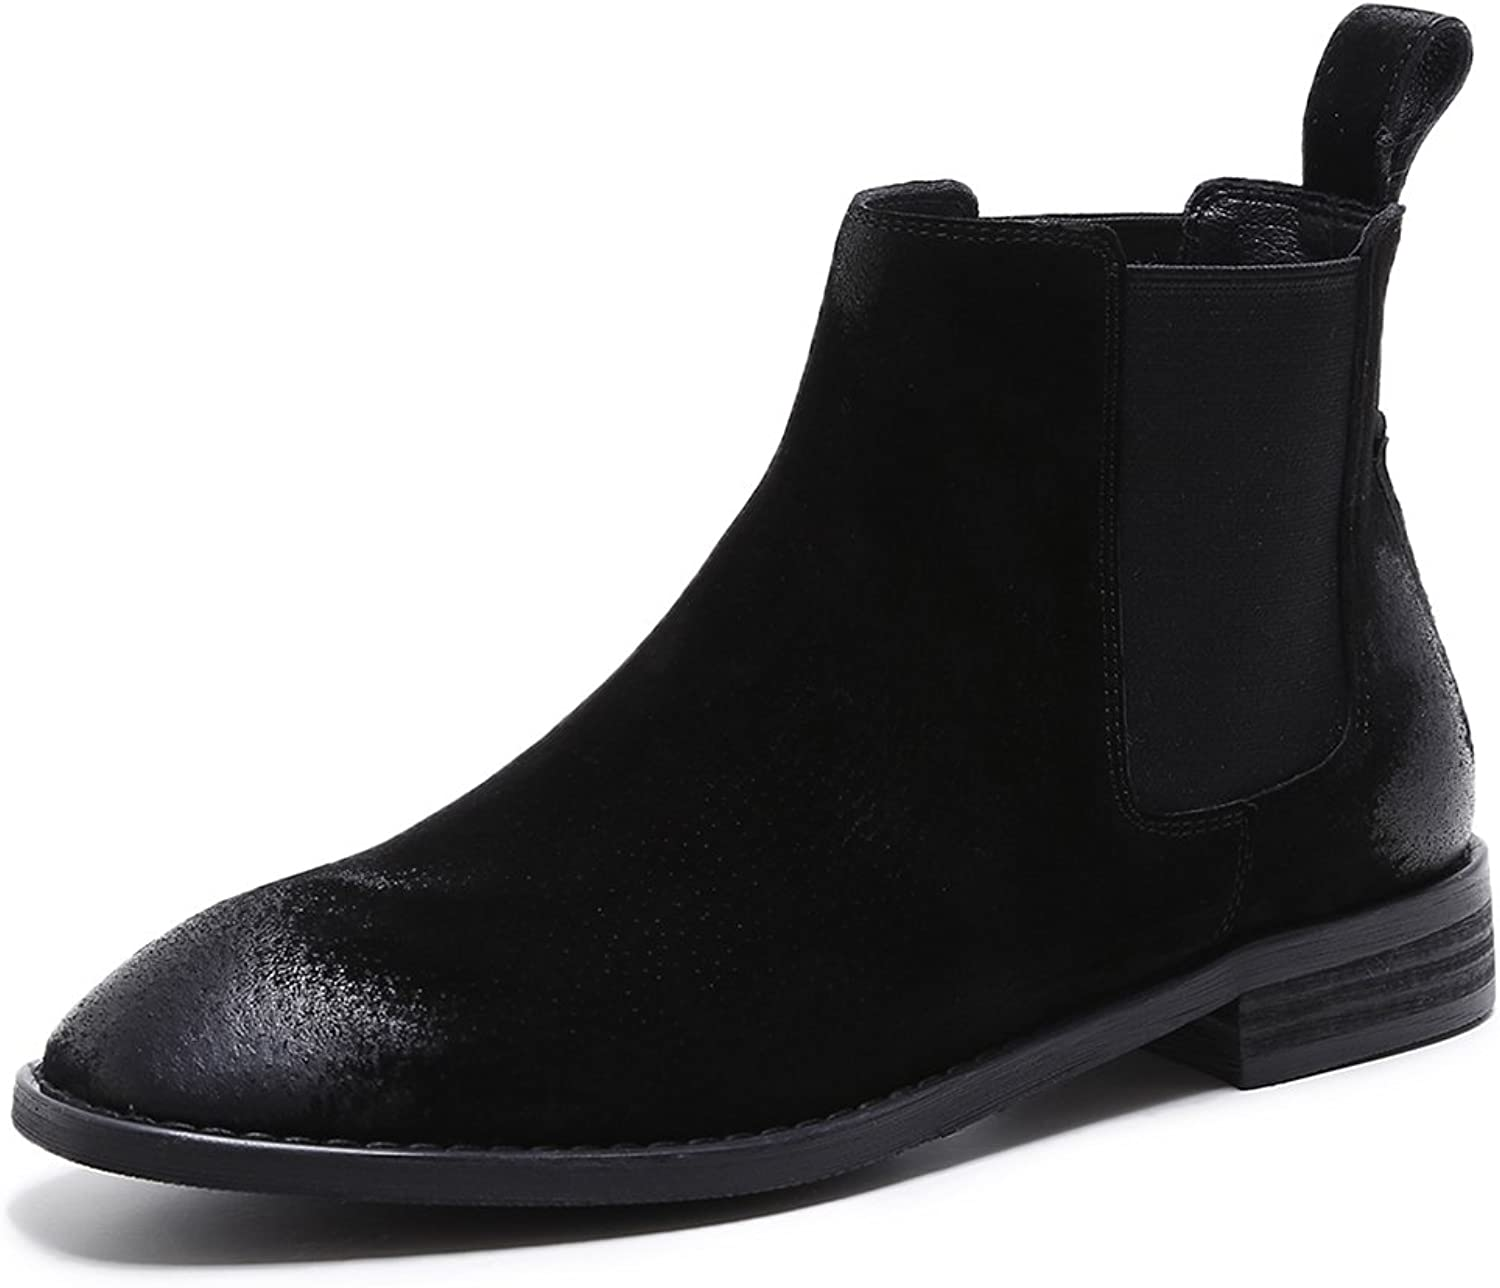 A-BUYBEA Women's Vintage Low Heel Square Toe Genuine Leather Ankle Chelsea Boots